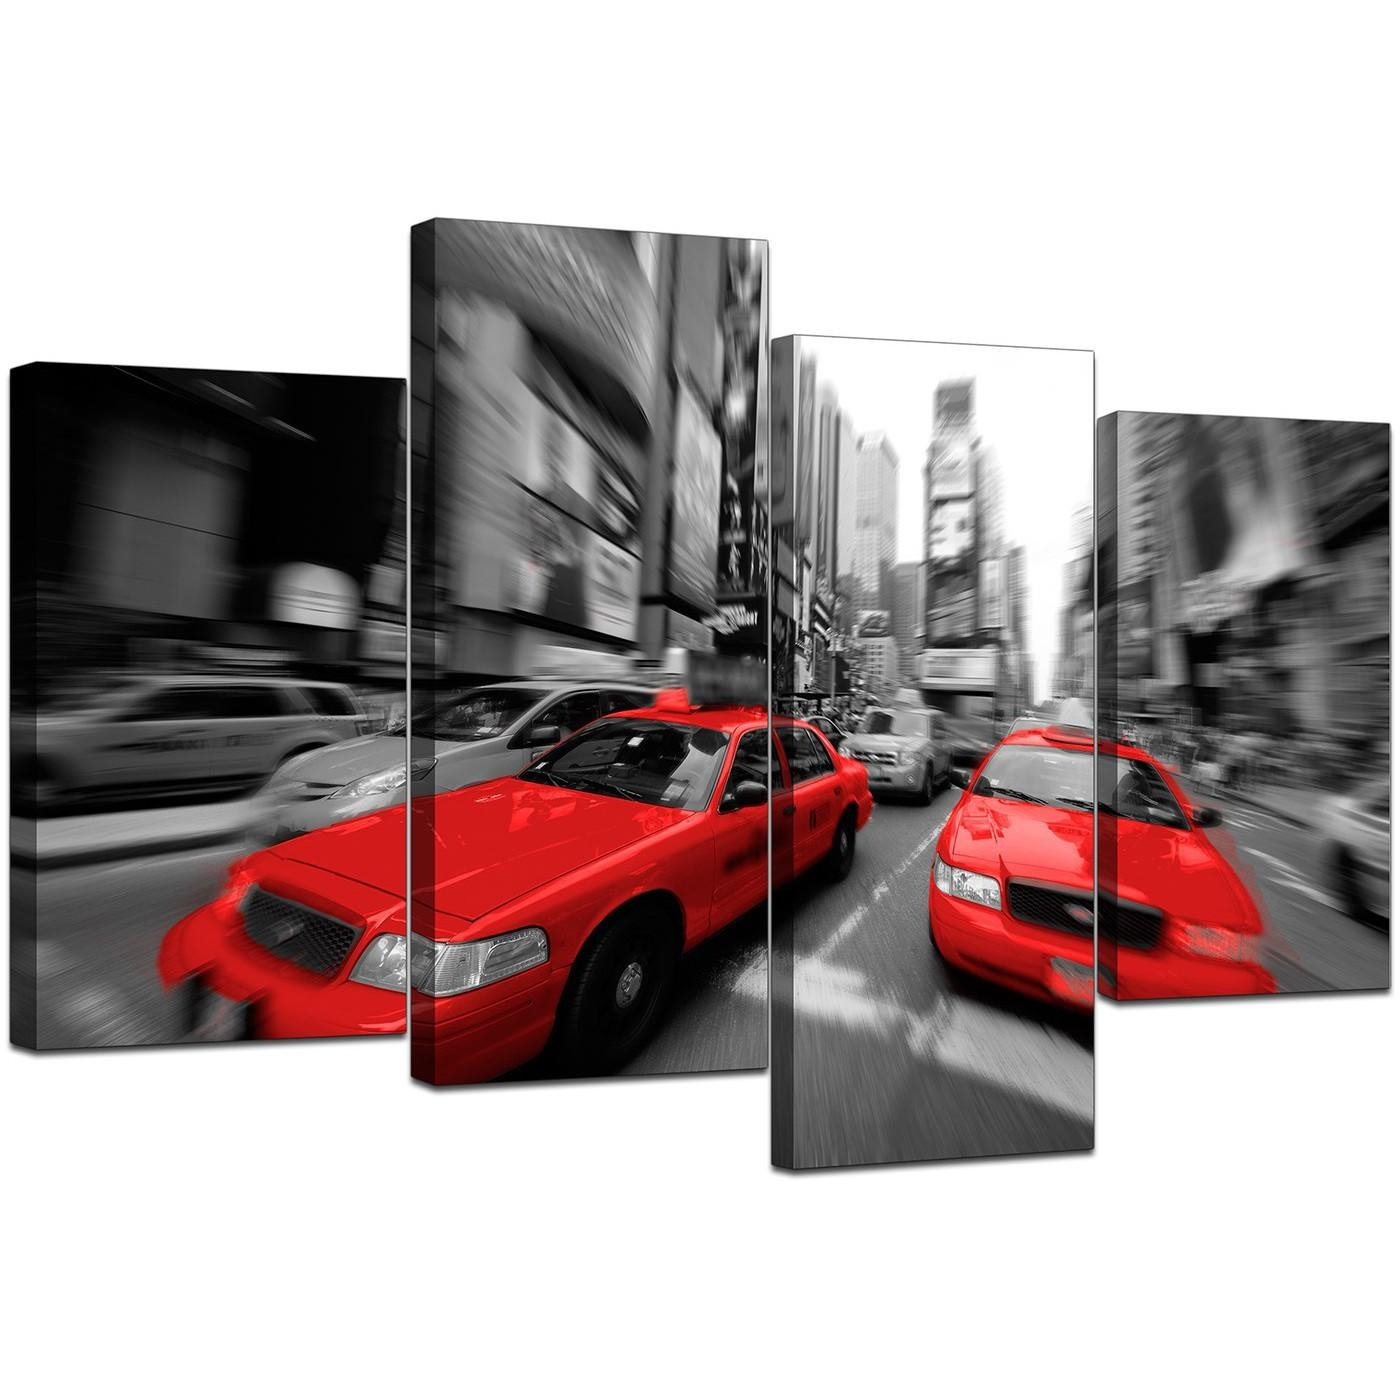 New York Canvas Prints In Black White & Red – For Living Room With Black And White New York Canvas Wall Art (View 8 of 20)